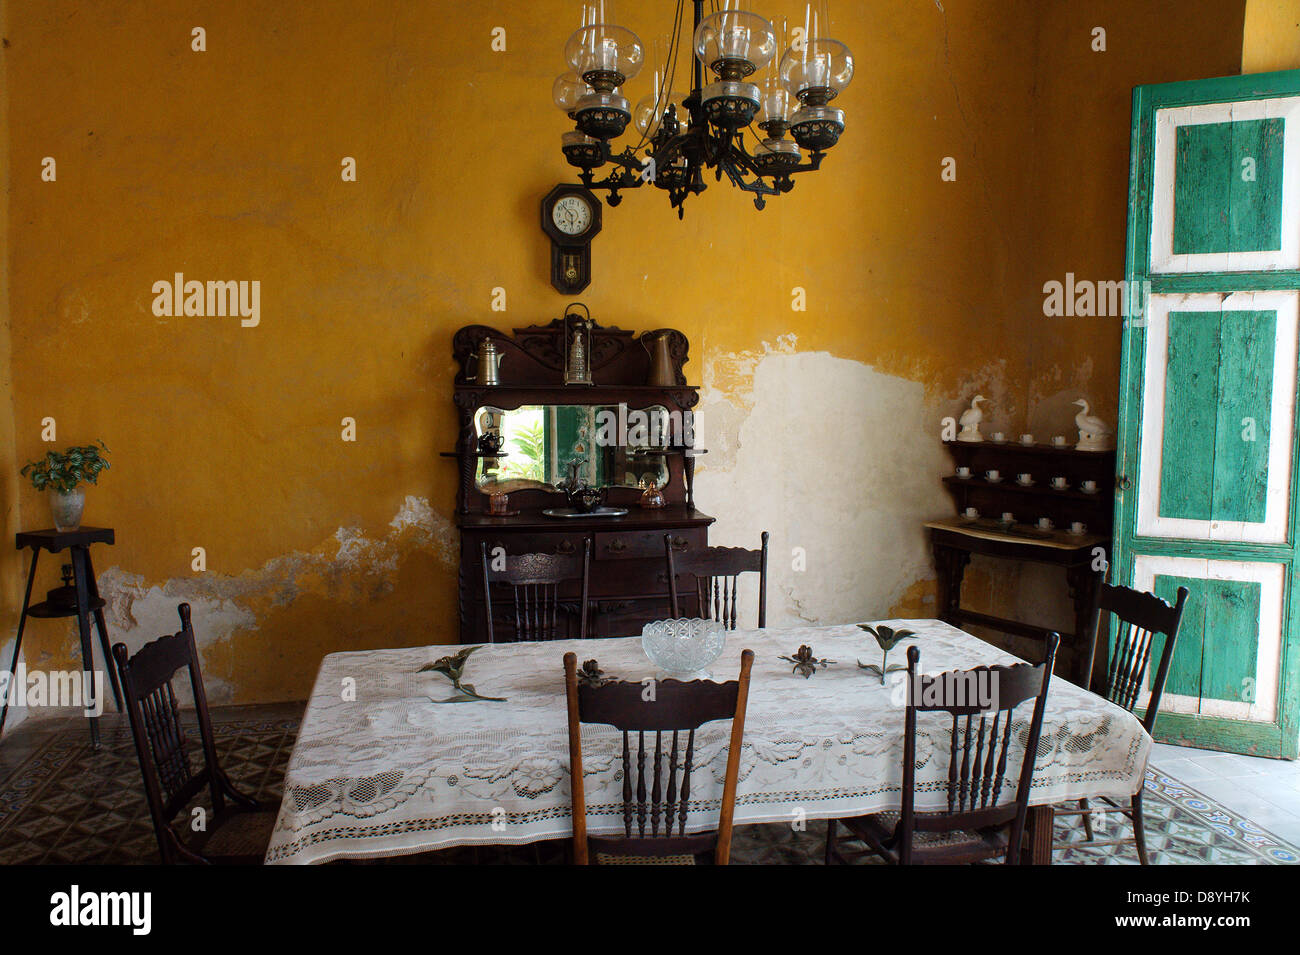 Dining Room With Colonial Antique Furniture At Hacienda Yaxcopoil, Yucatan,  Mexico   Stock Image